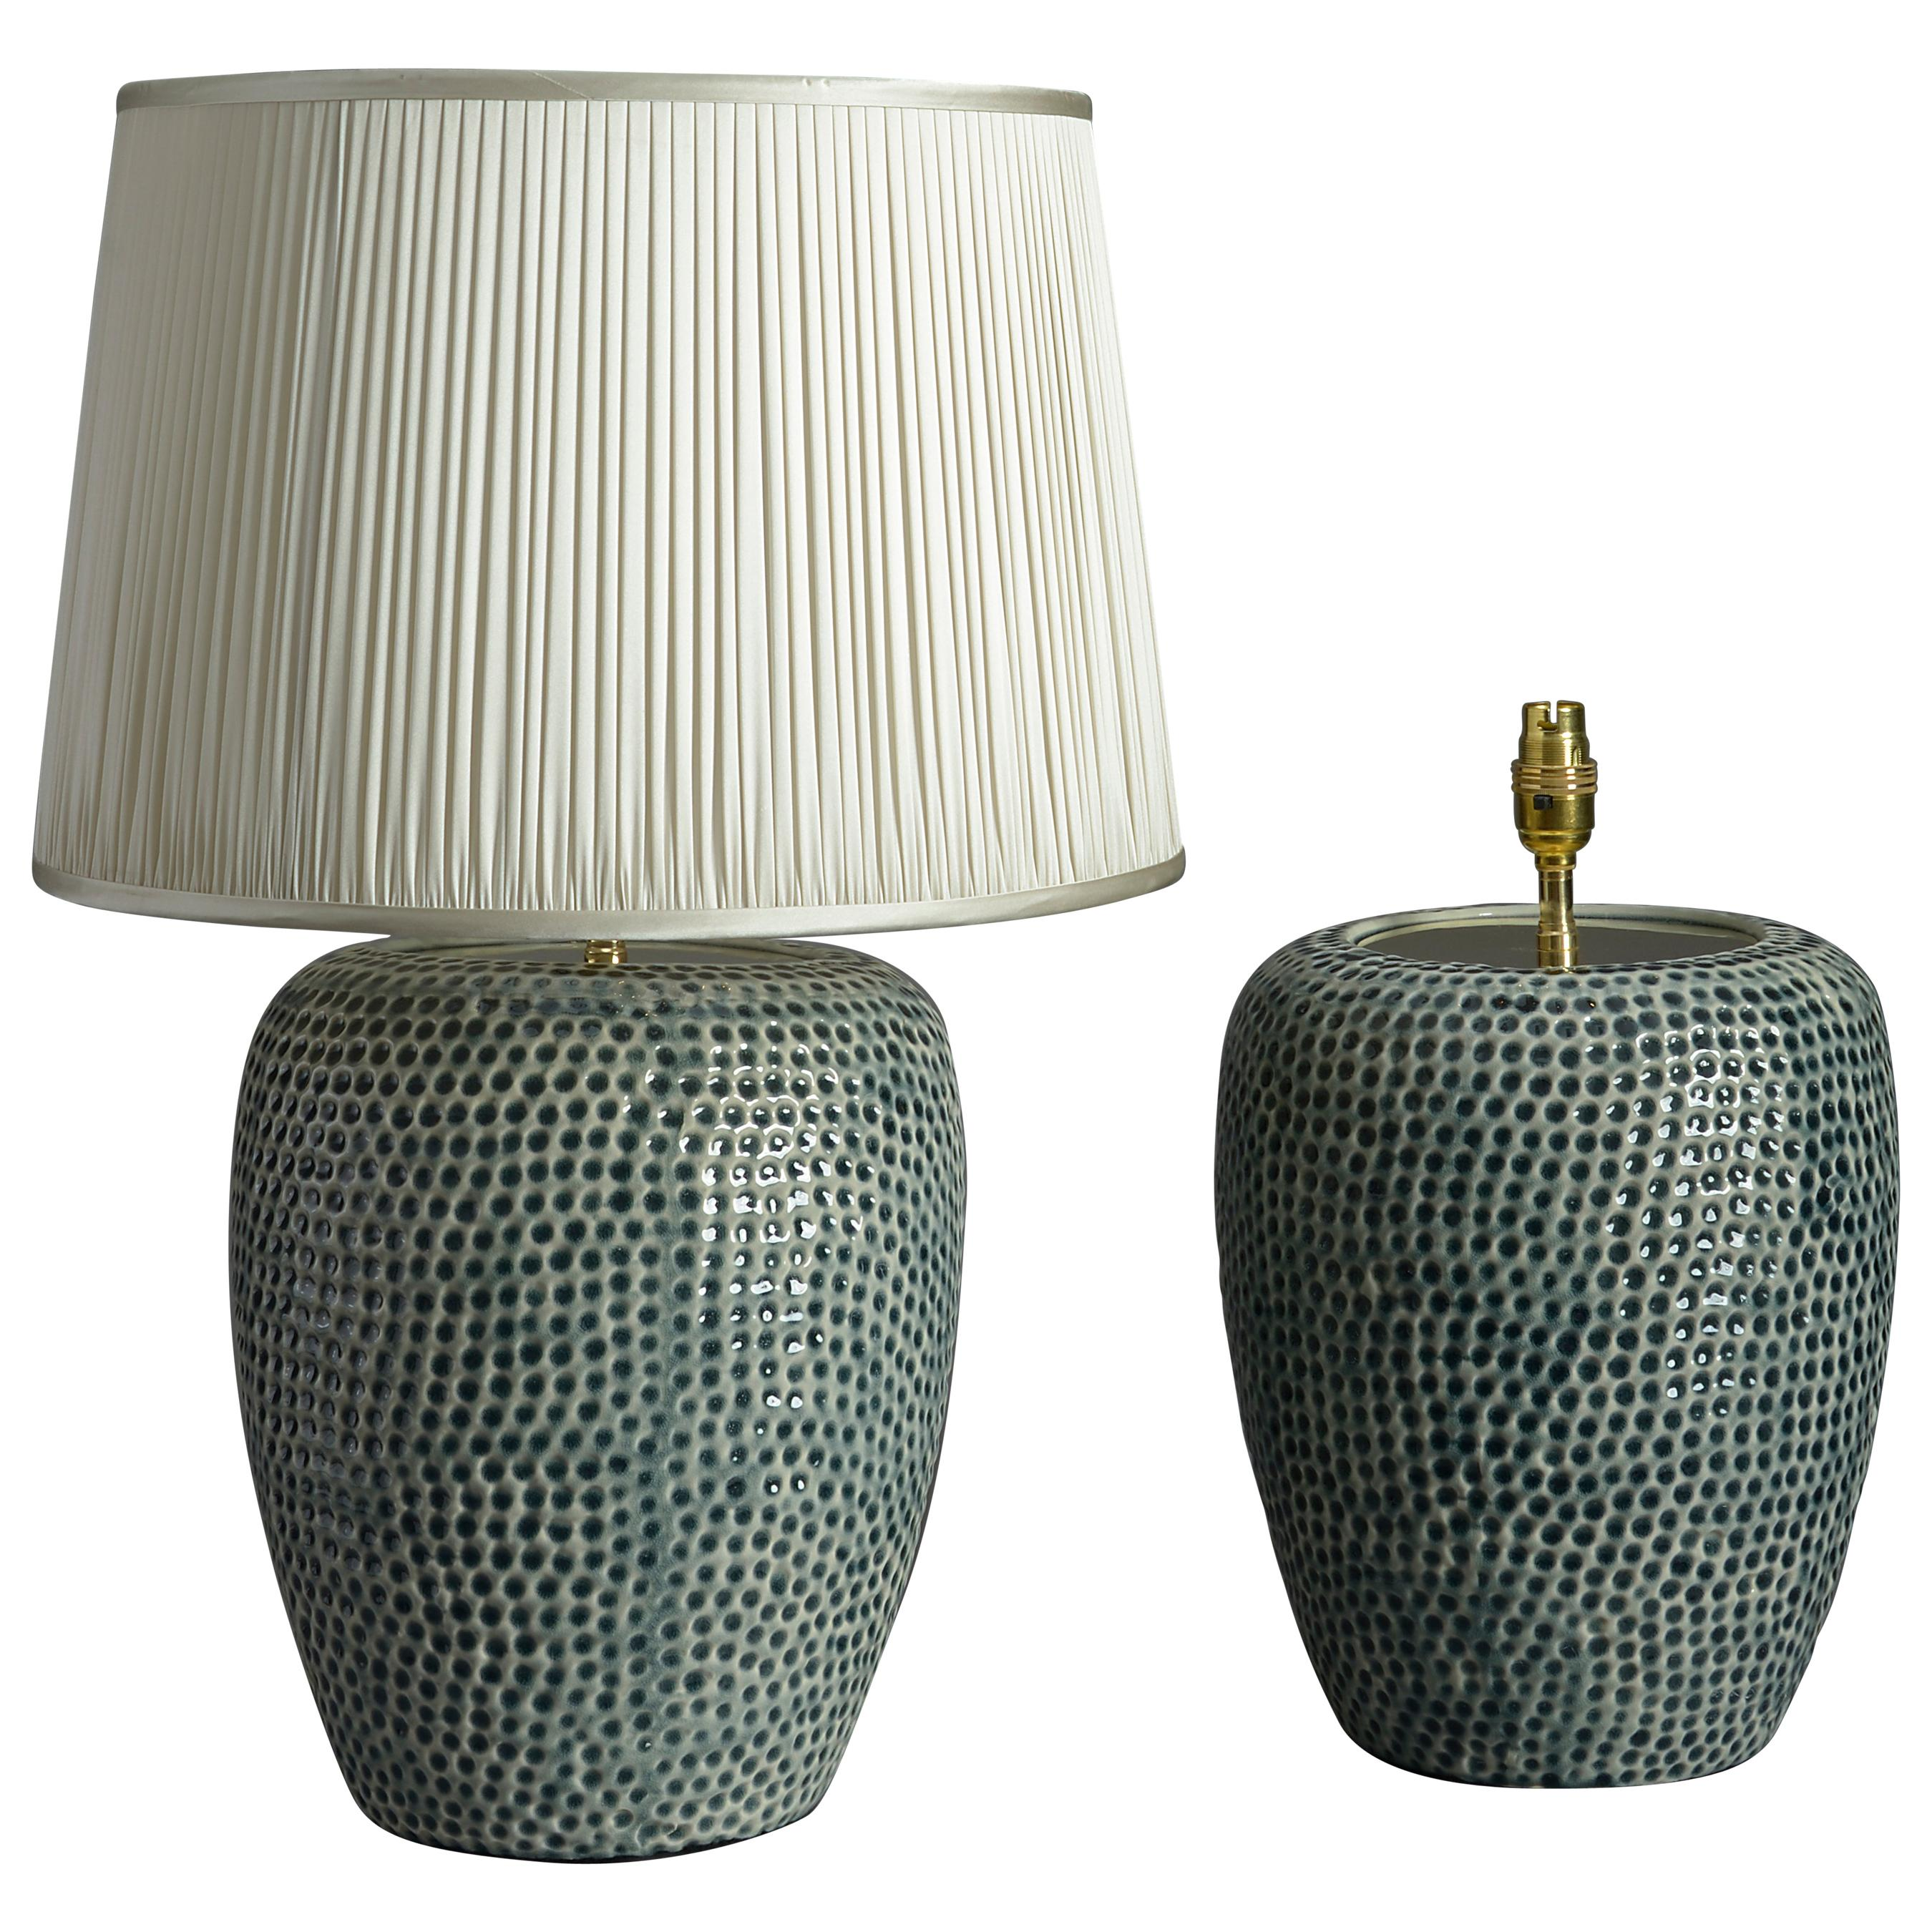 Pair of Green Glazed Ceramic Jar Lamps